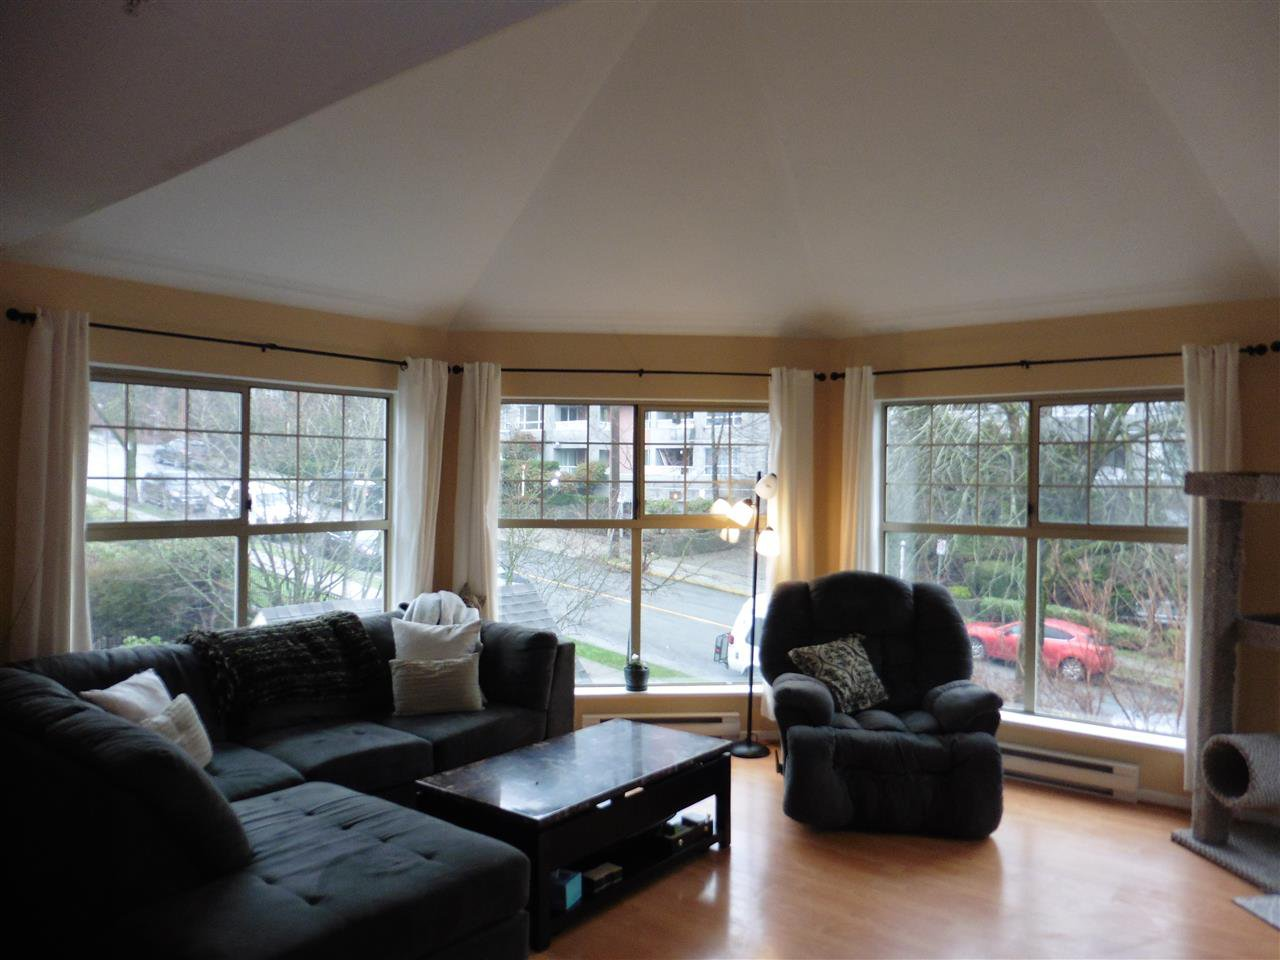 """Photo 3: Photos: 506 210 ELEVENTH Street in New Westminster: Uptown NW Condo for sale in """"DISCOVERY REACH"""" : MLS®# R2434040"""